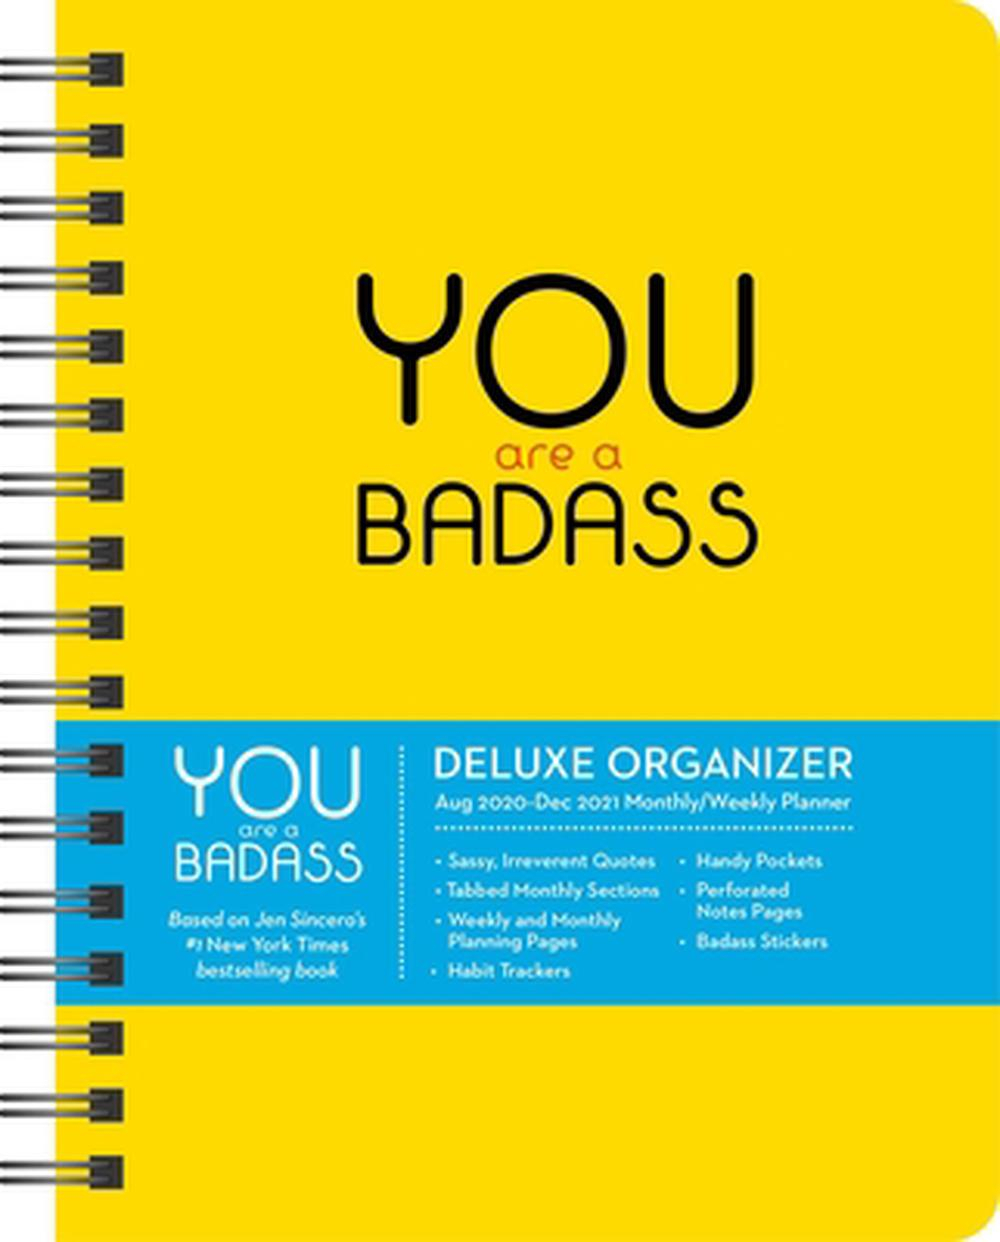 You Are A Badass 17-Month 2020-2021 Monthly/Weekly Planning Calendar:  Deluxe Organizer (August 2020-December 2021) intended for 2021 Planner: Weekly Calendar Planner